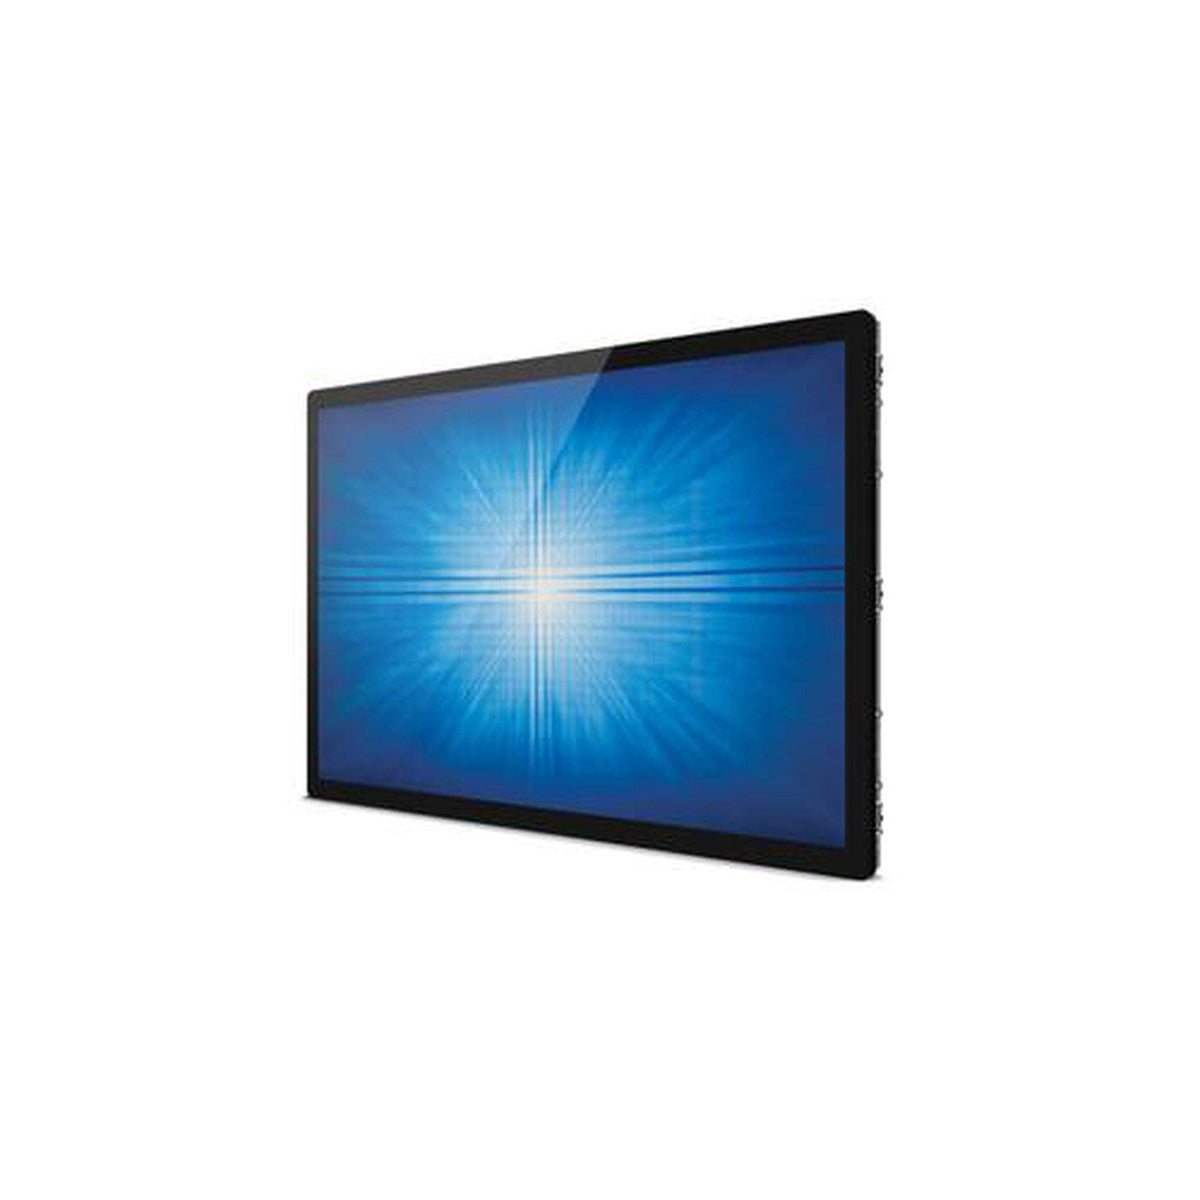 "Elo Touch Solution 4343L 108 cm (42.5"") 1920 x 1080 pixels 